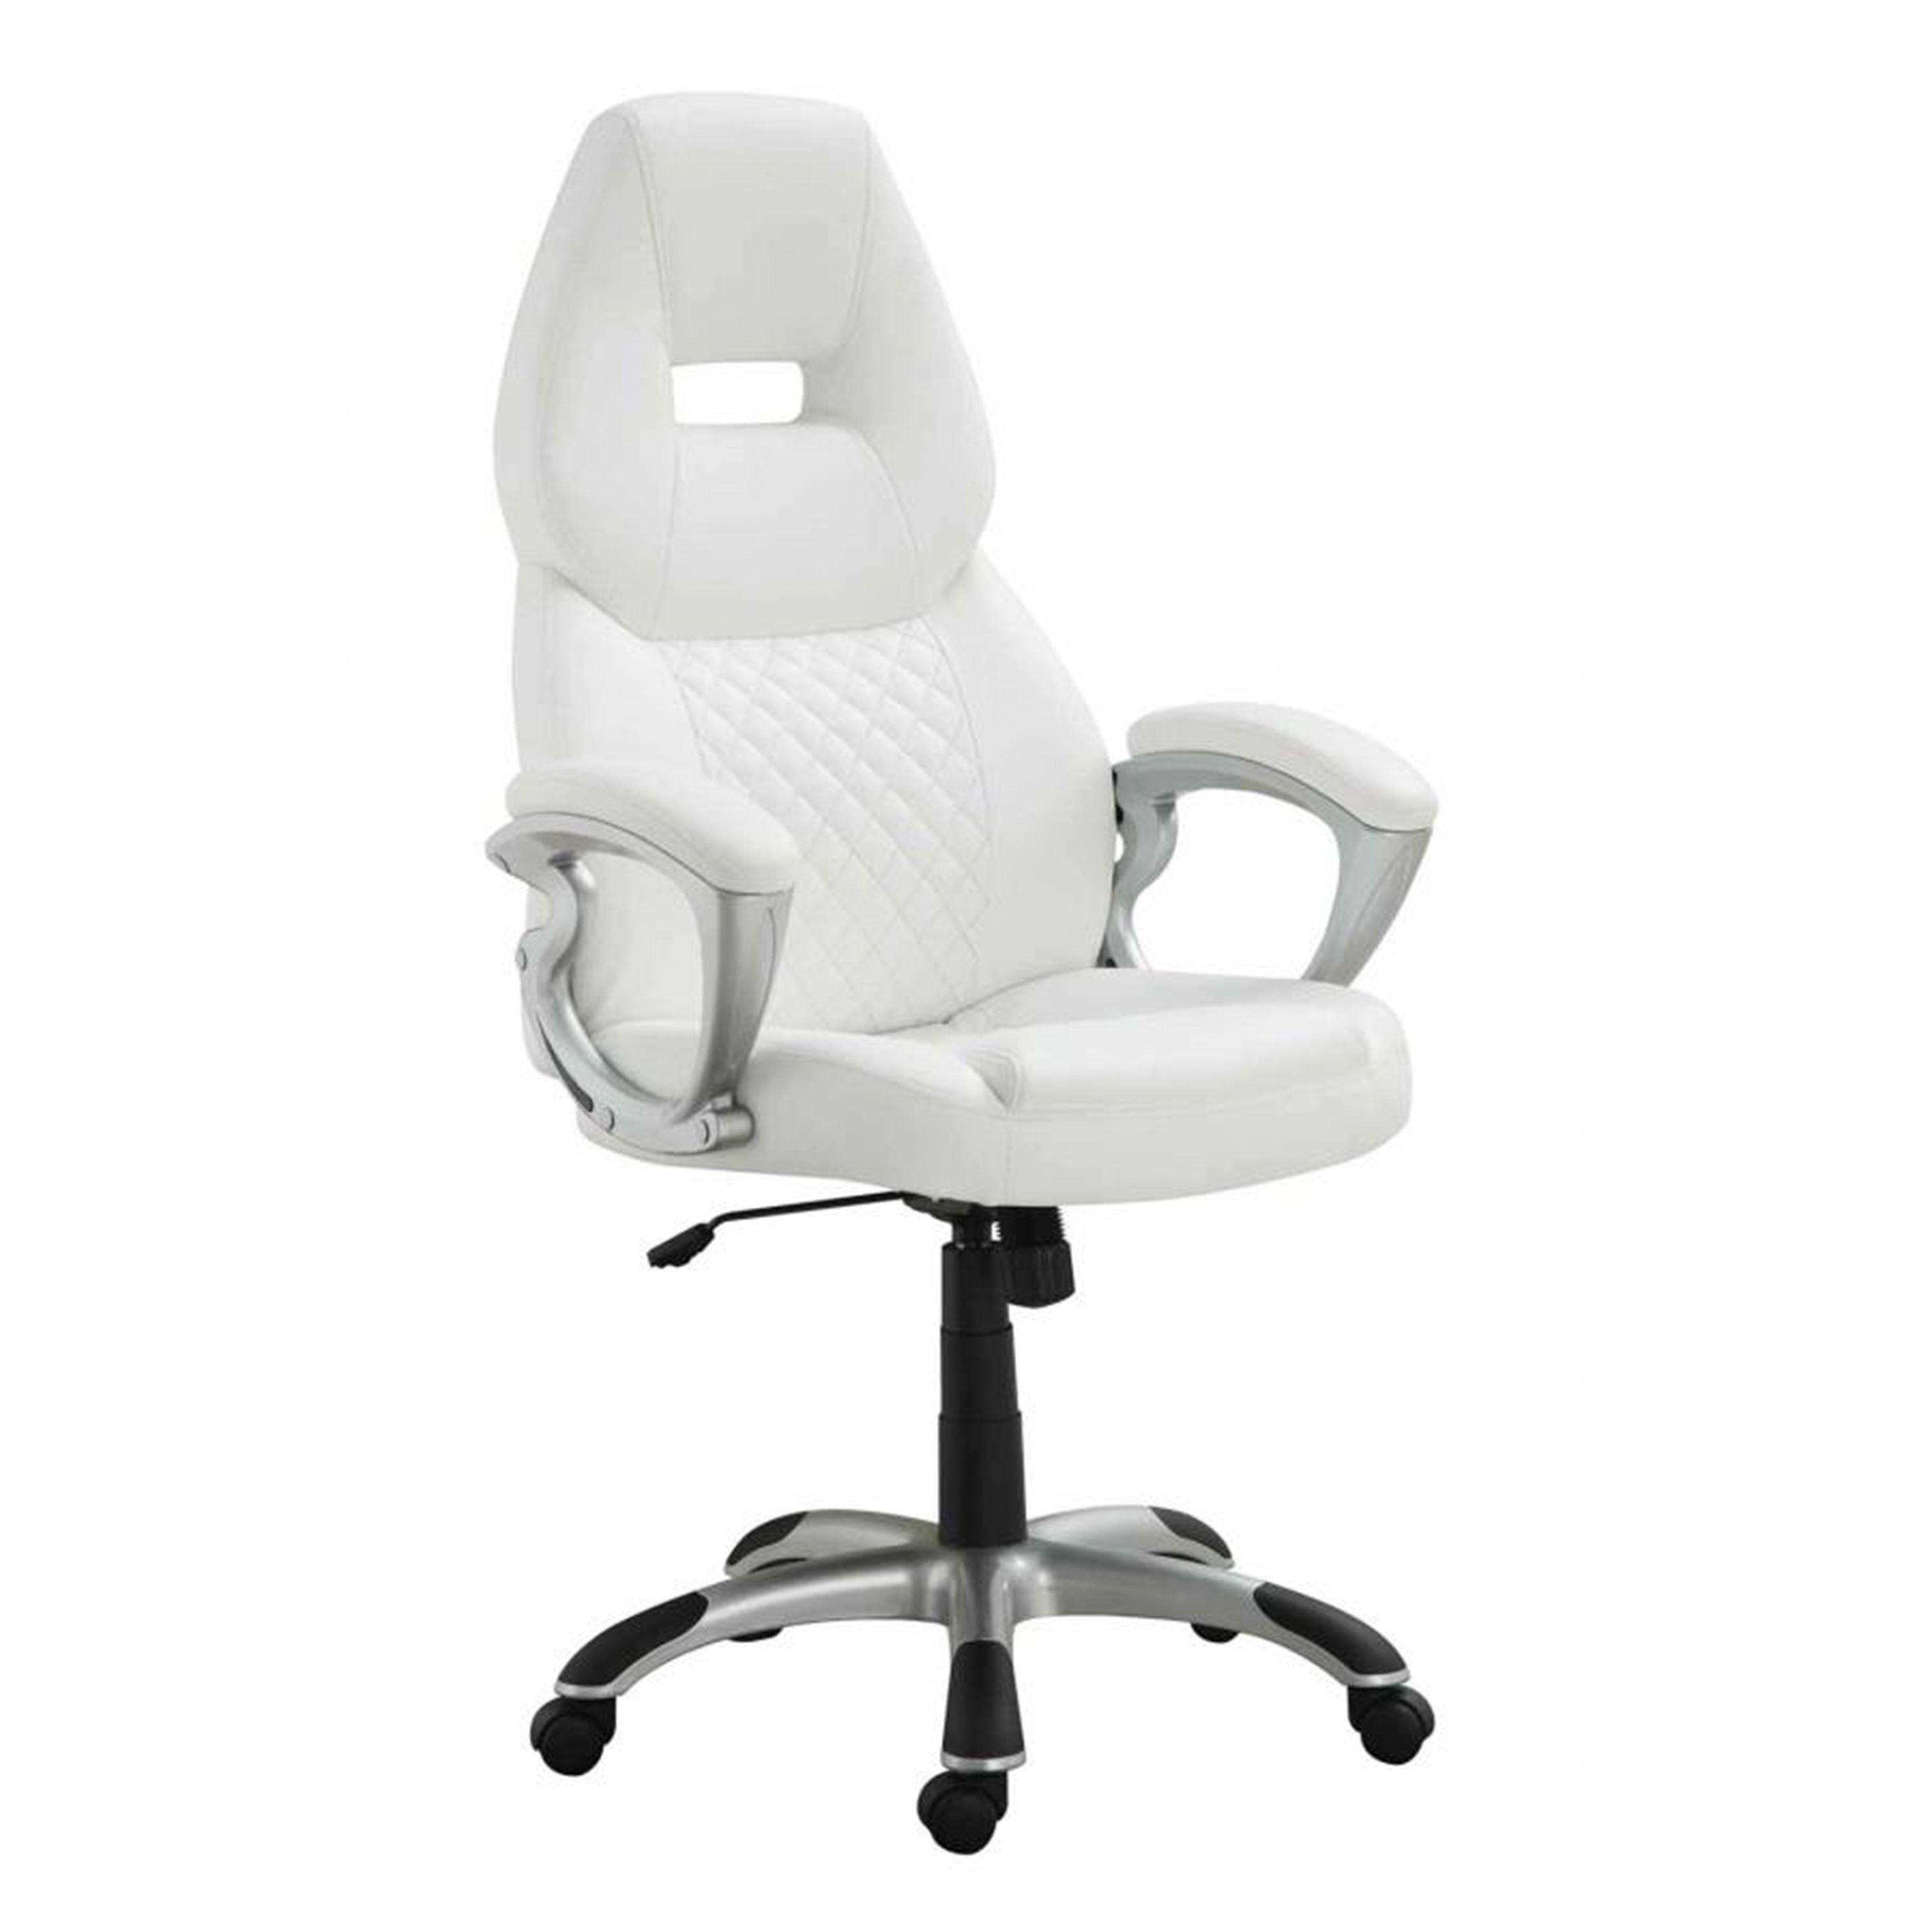 Worldwide Quinn Leatherette Office Chair in White